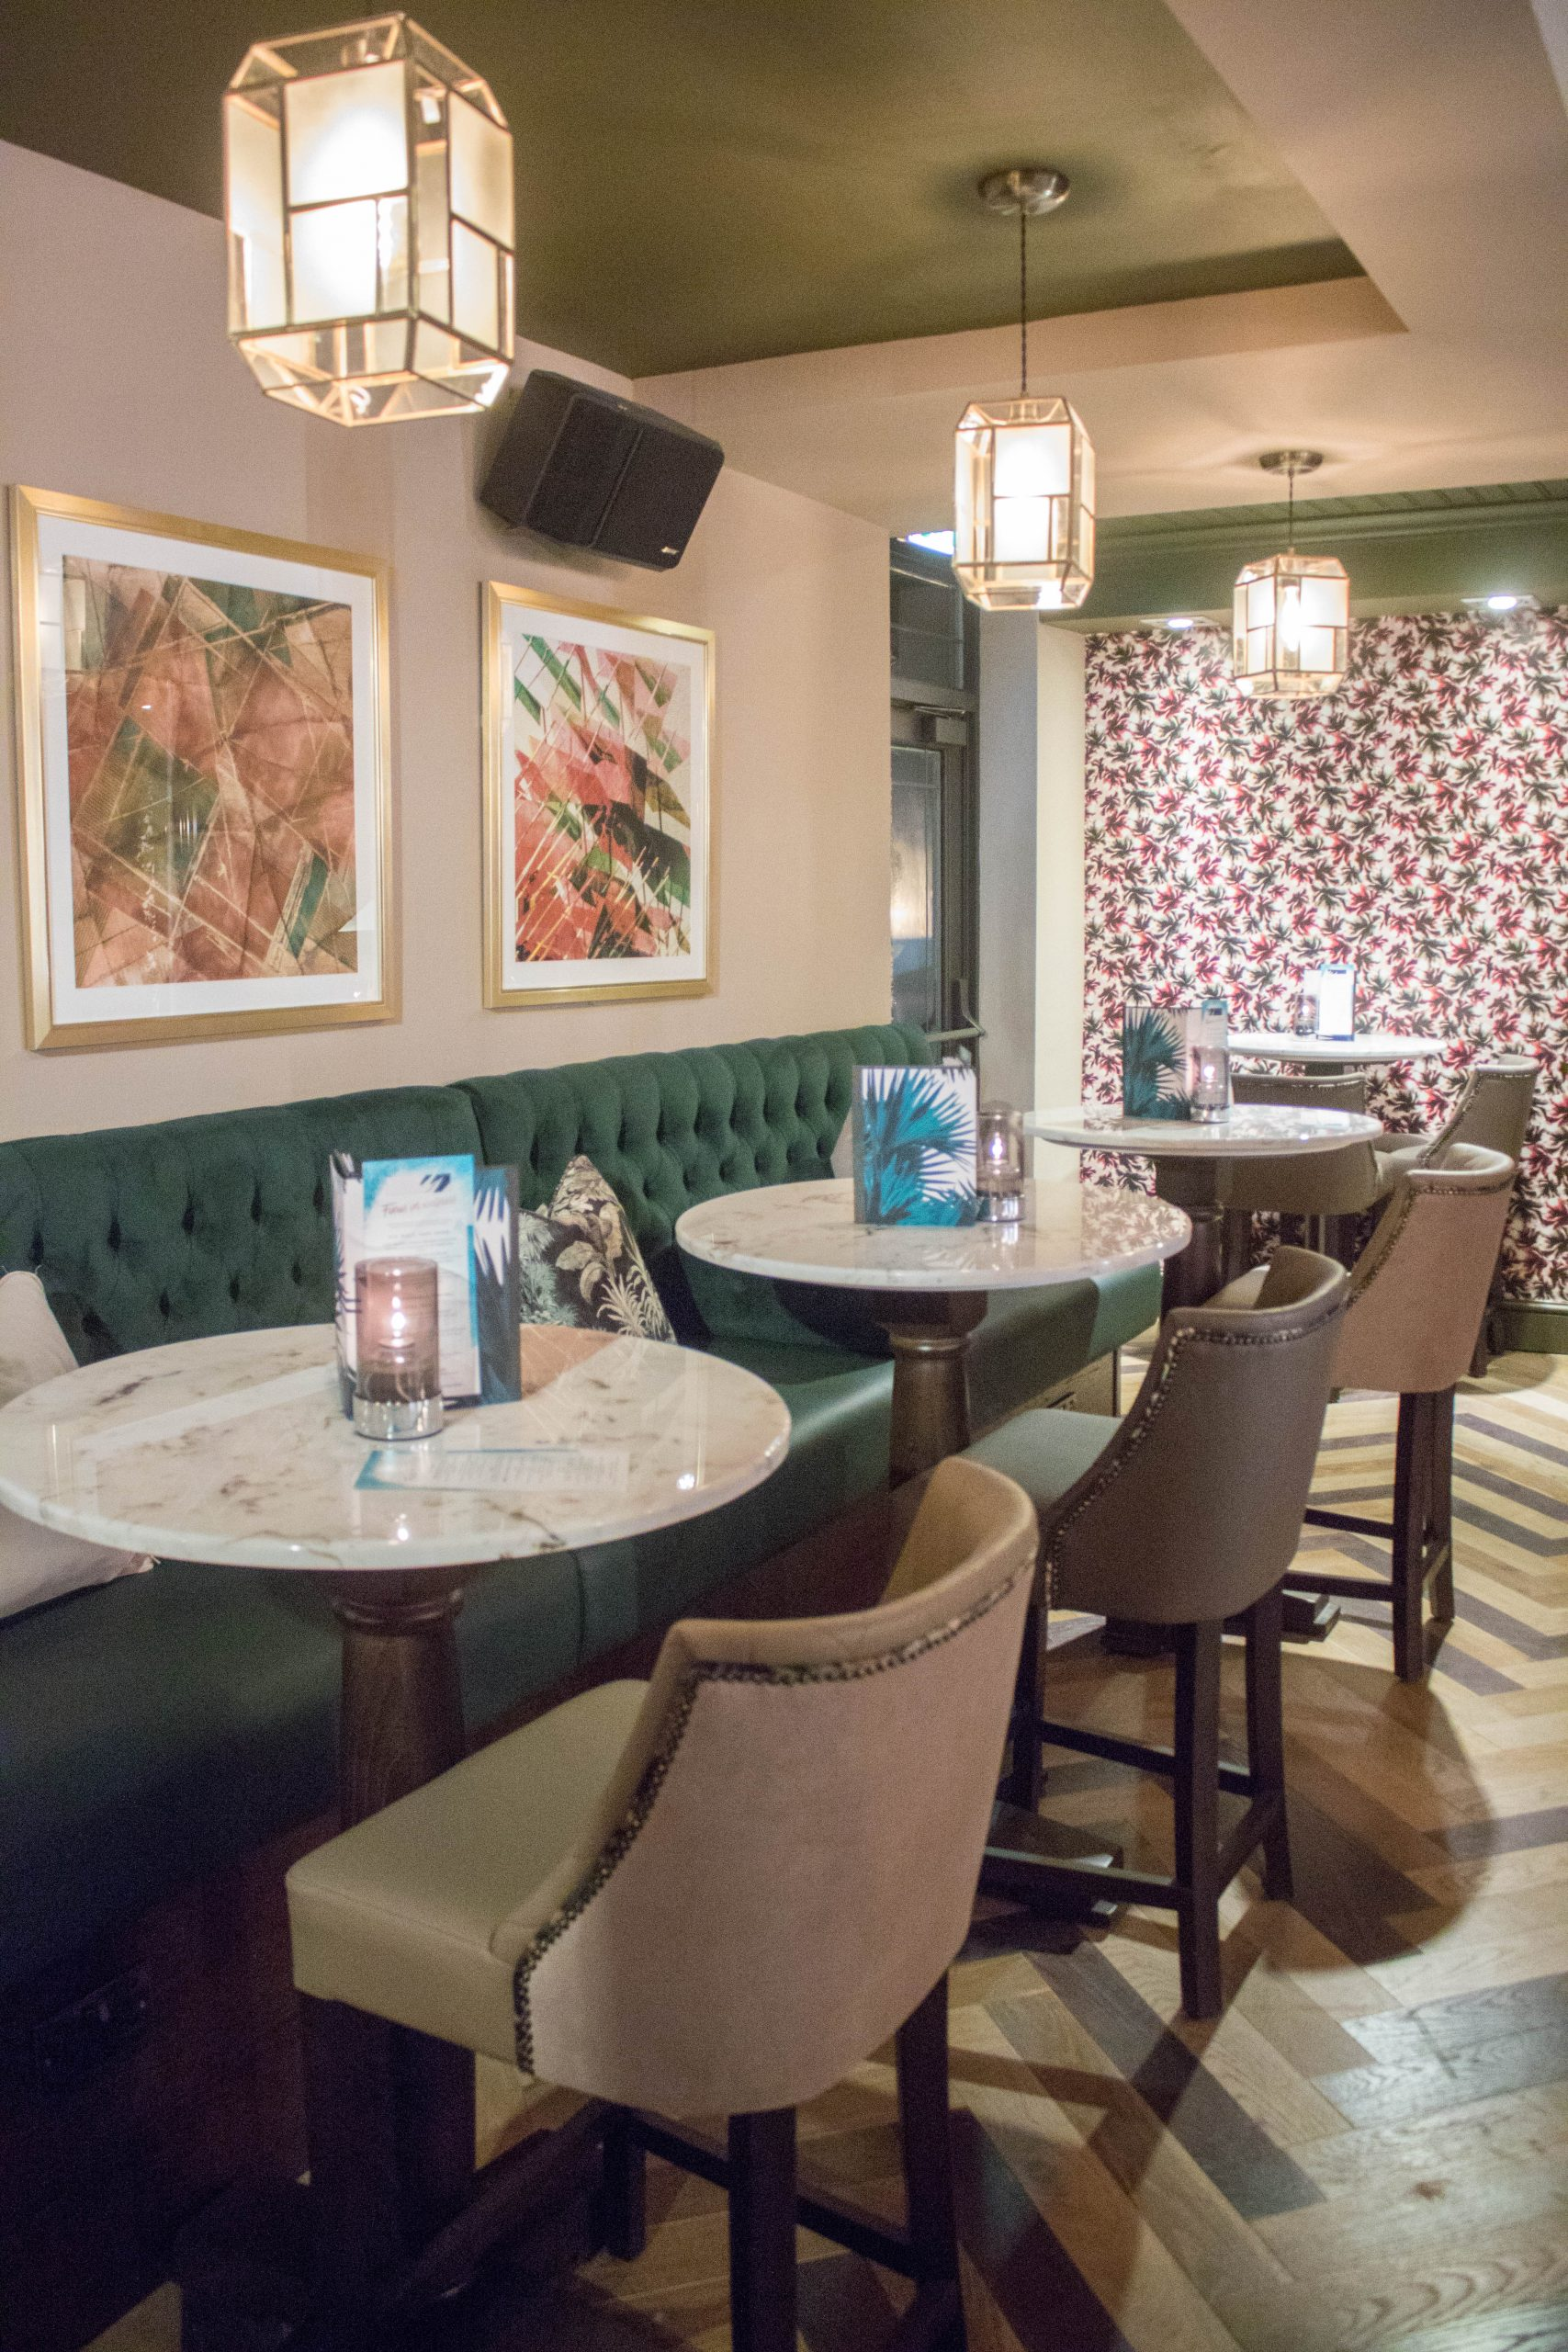 Leeds Eats: The Deer Park Pub